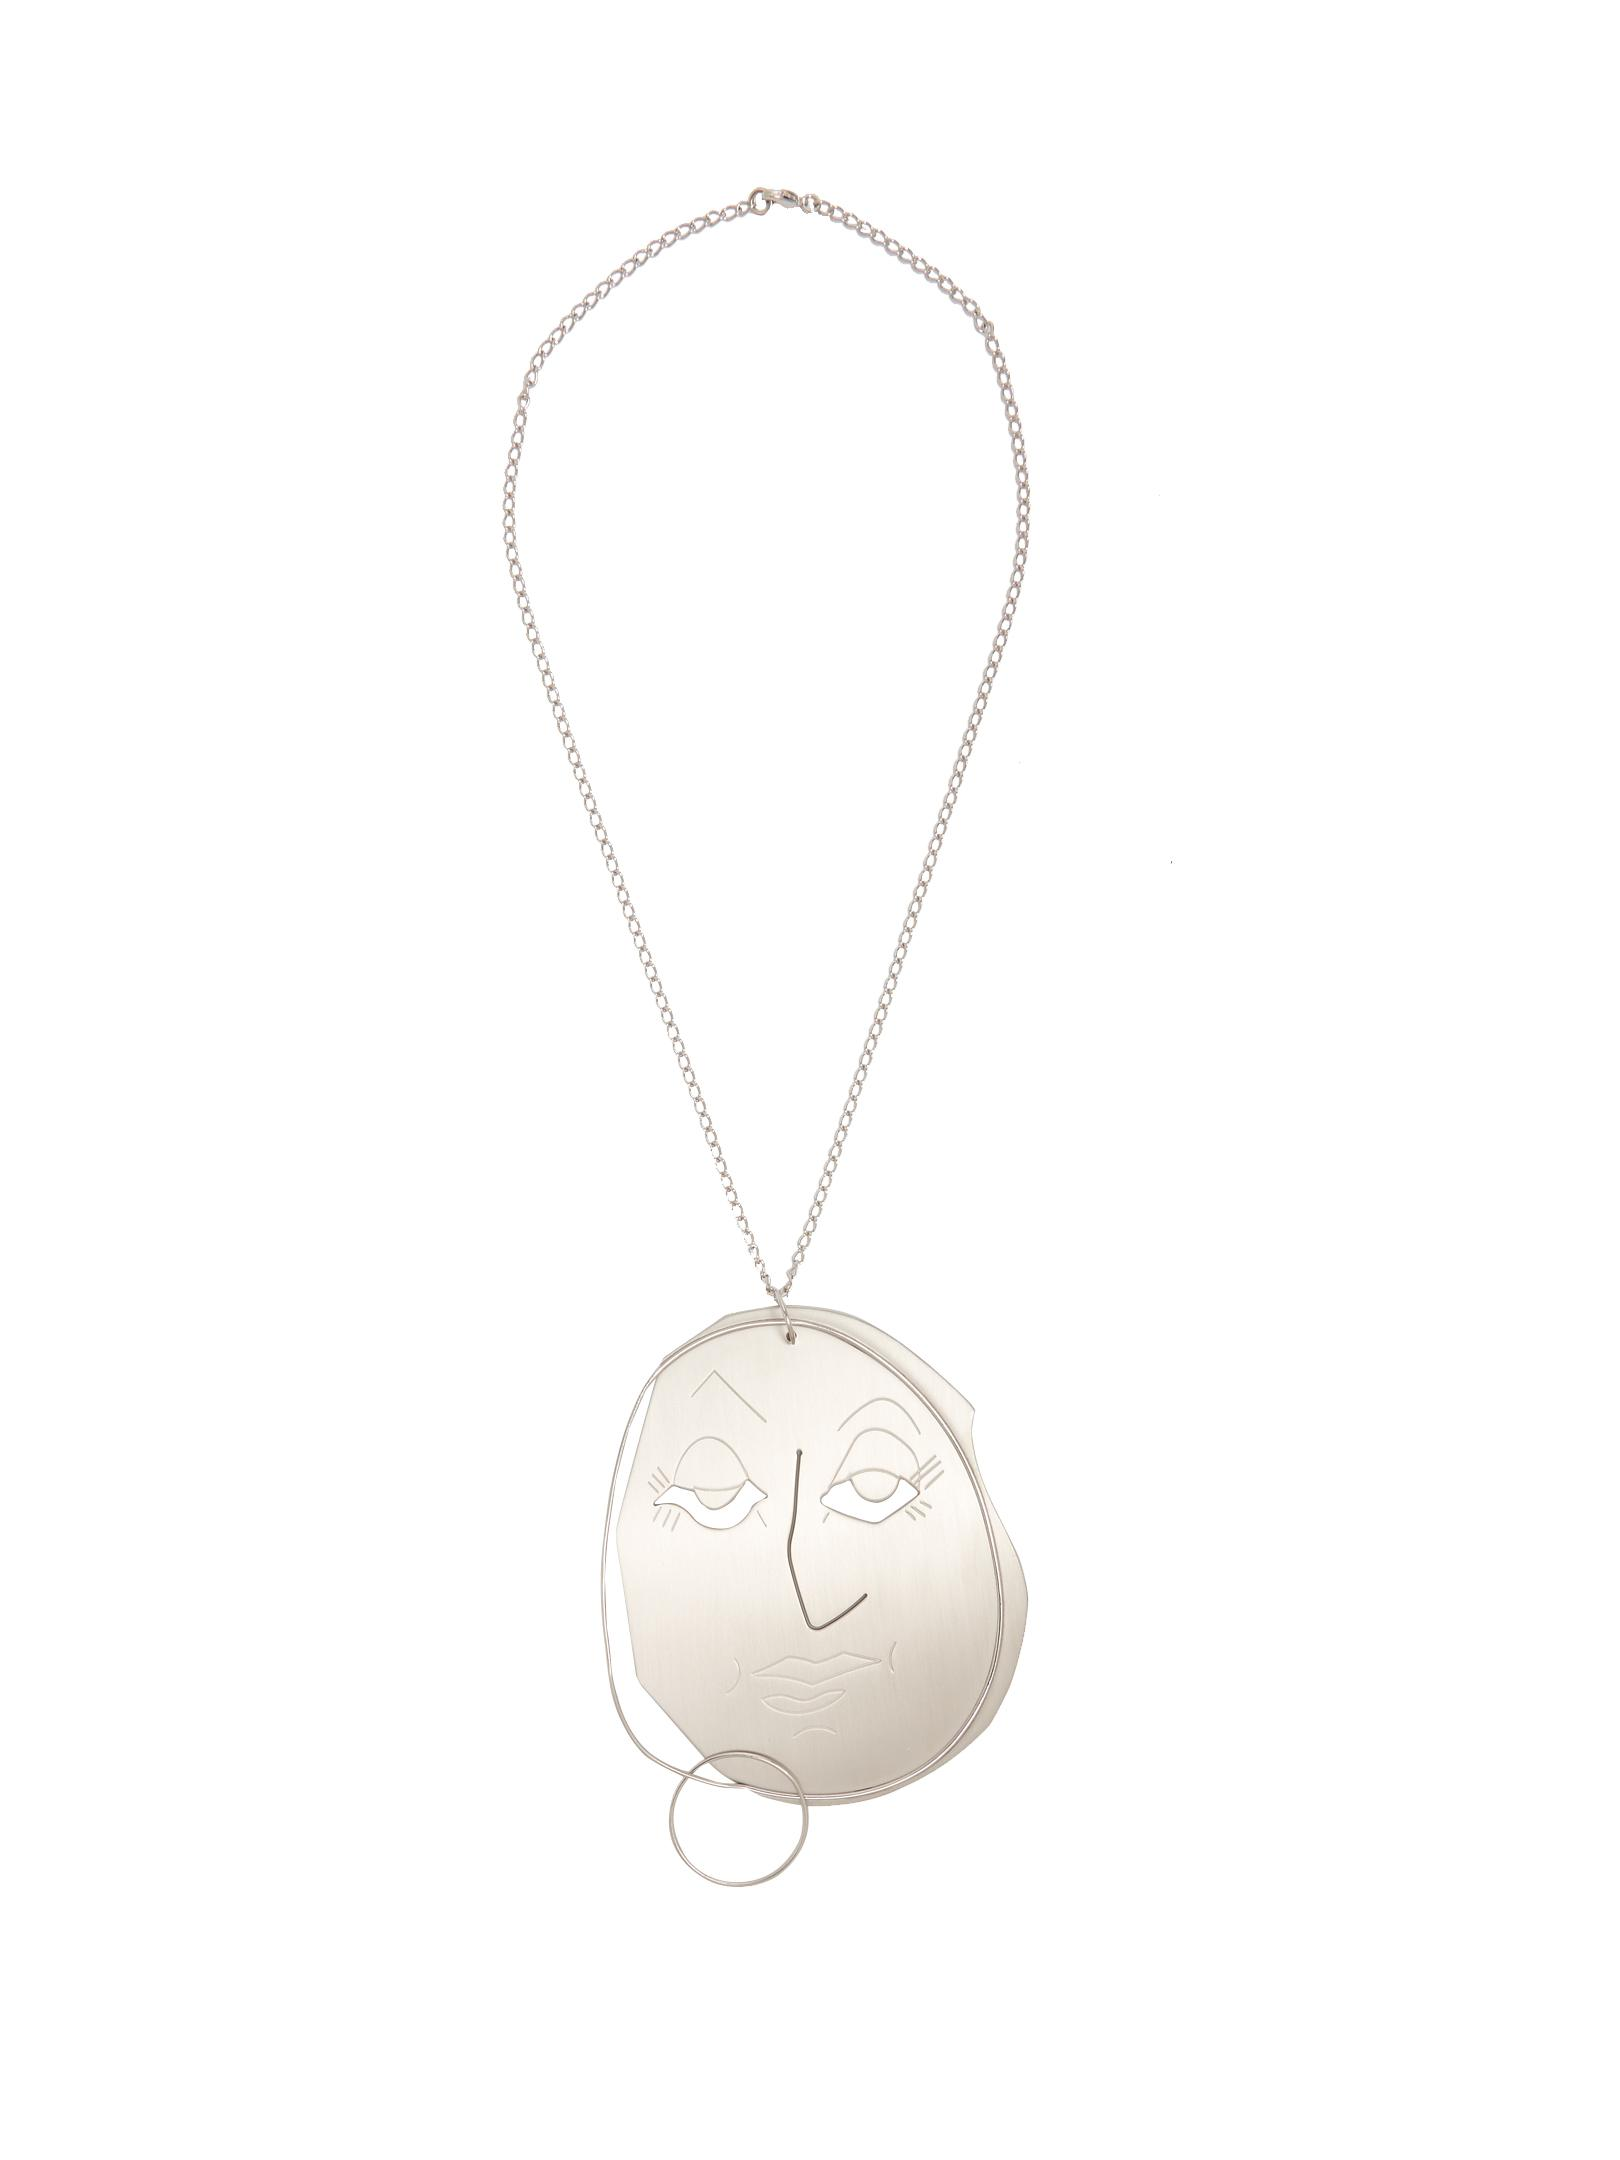 J.W.Anderson double ball pendant necklace - Metallic qfzx0L